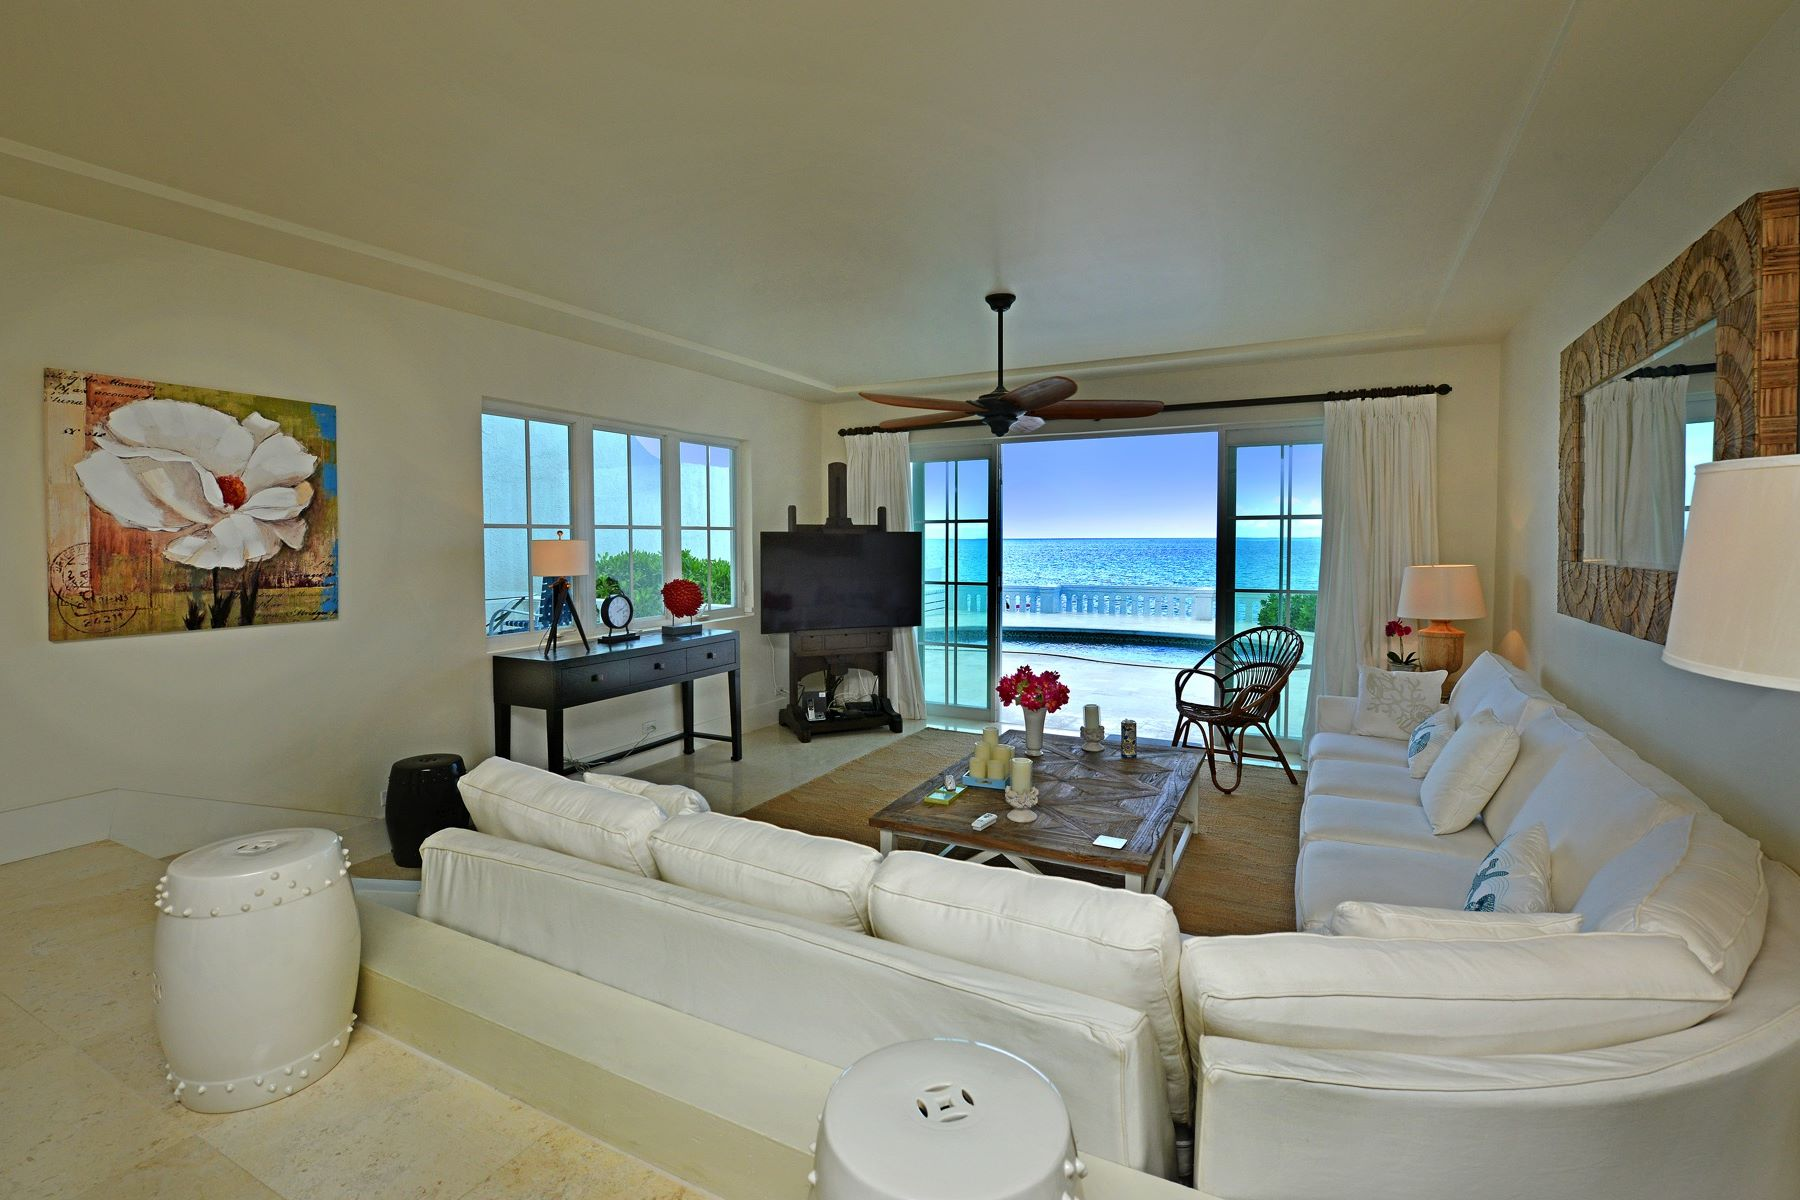 Single Family Home for Sale at Oceanfront Caprice #8 Caprice, Cable Beach, Nassau And Paradise Island Bahamas